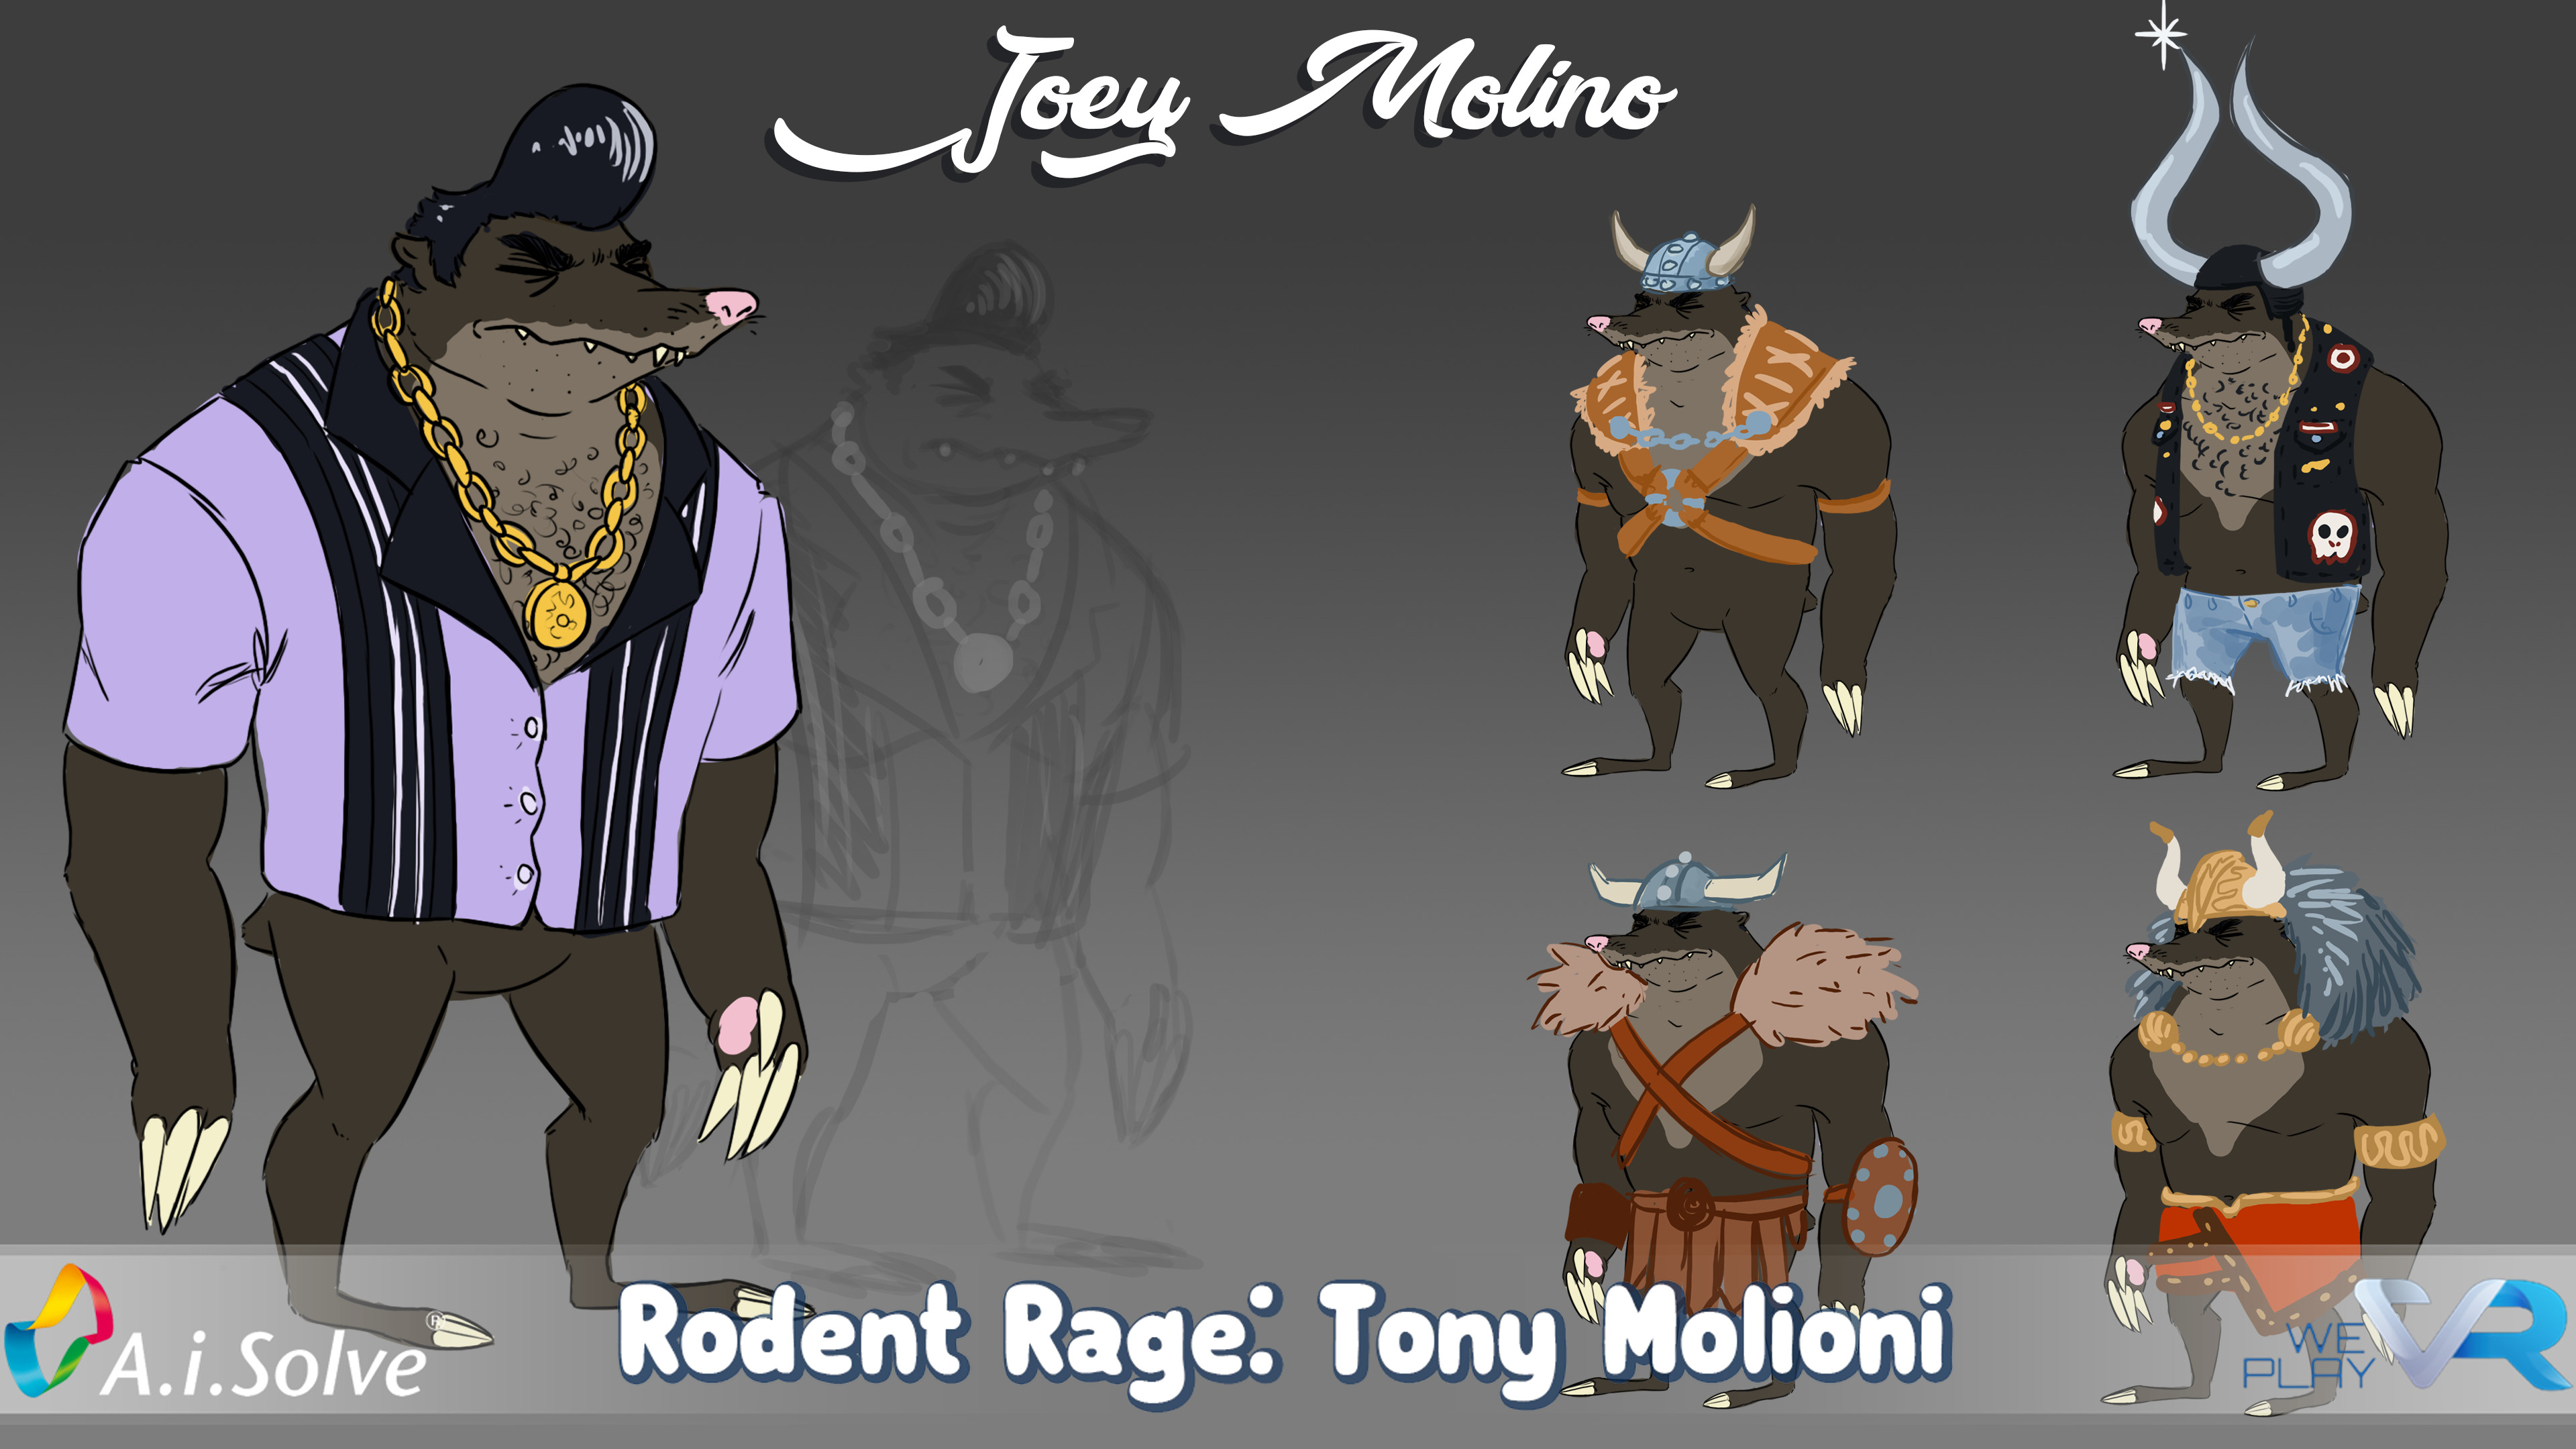 Tony Molioni, final drawing and outfit options